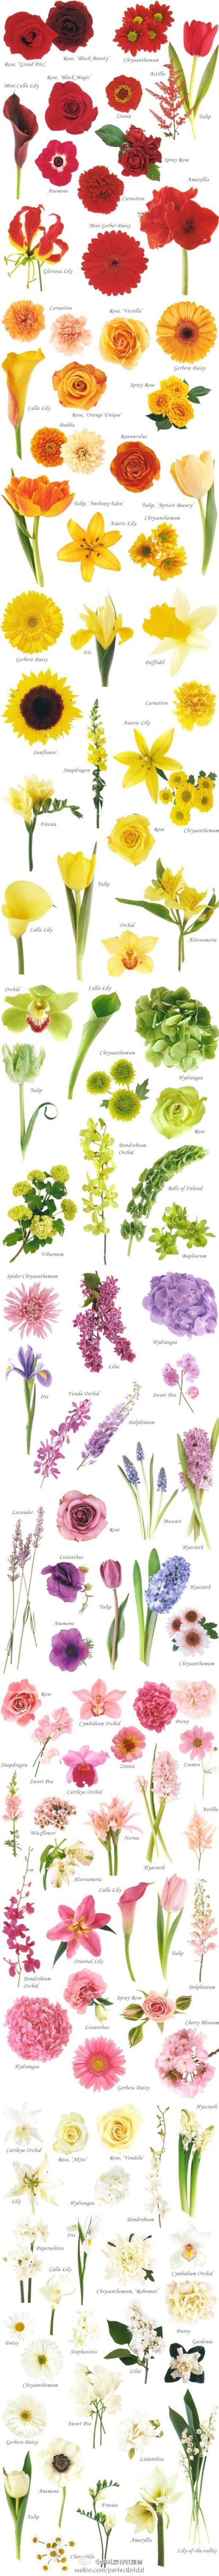 types of flowers. good to know